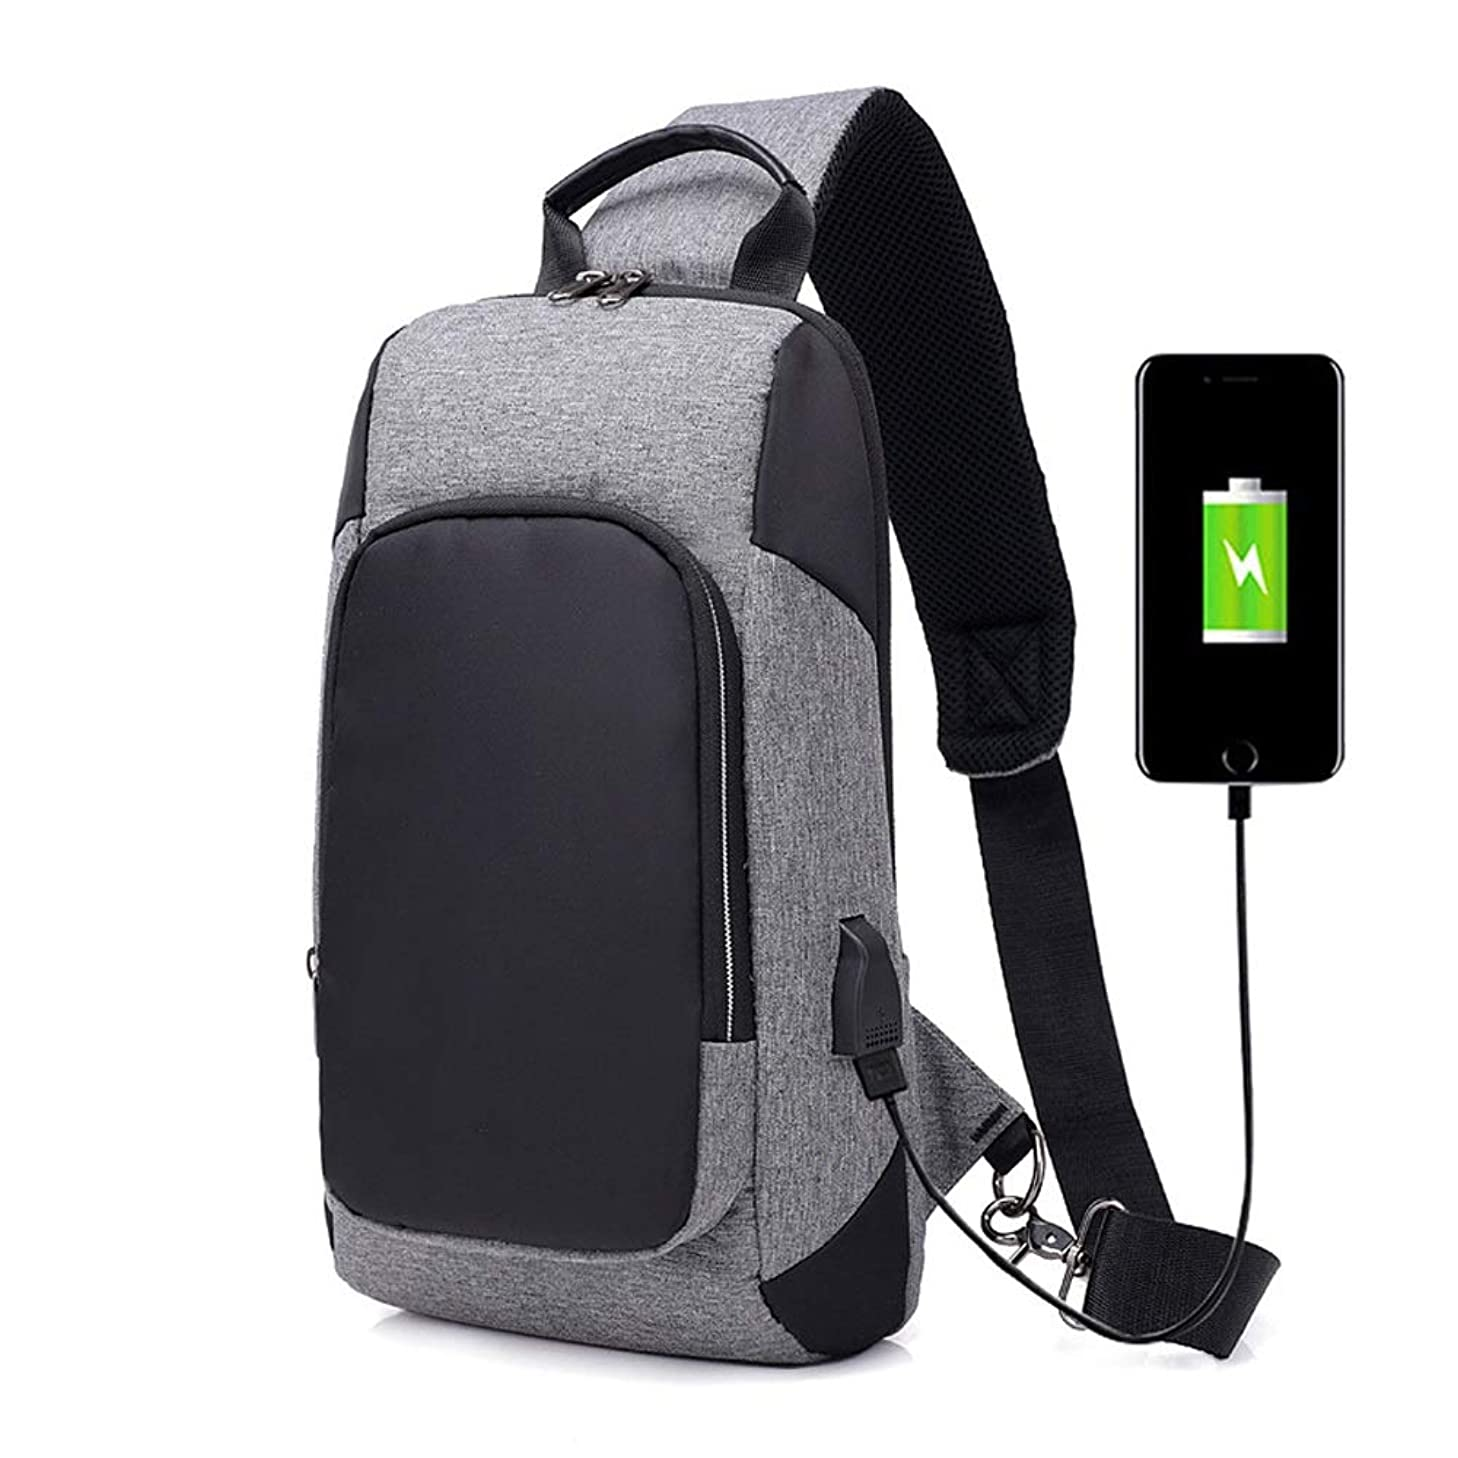 NY-close Multifunctional Sling Shoulder Bag with USB Sports Crossbody Bag,Rucksack Handbag School Daypack Lightweight Sport Hiking Travel Camping Gym Daypack Men Women (Color : Gray)